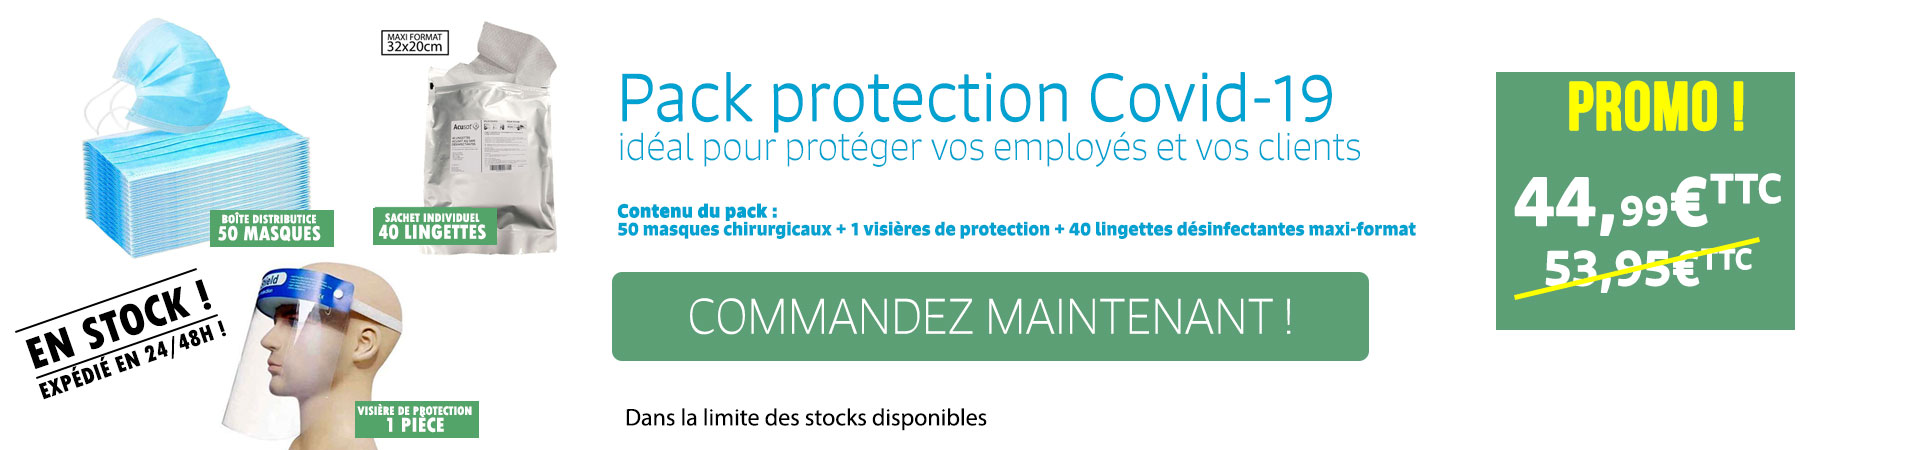 Pack de protections contre la covid-19